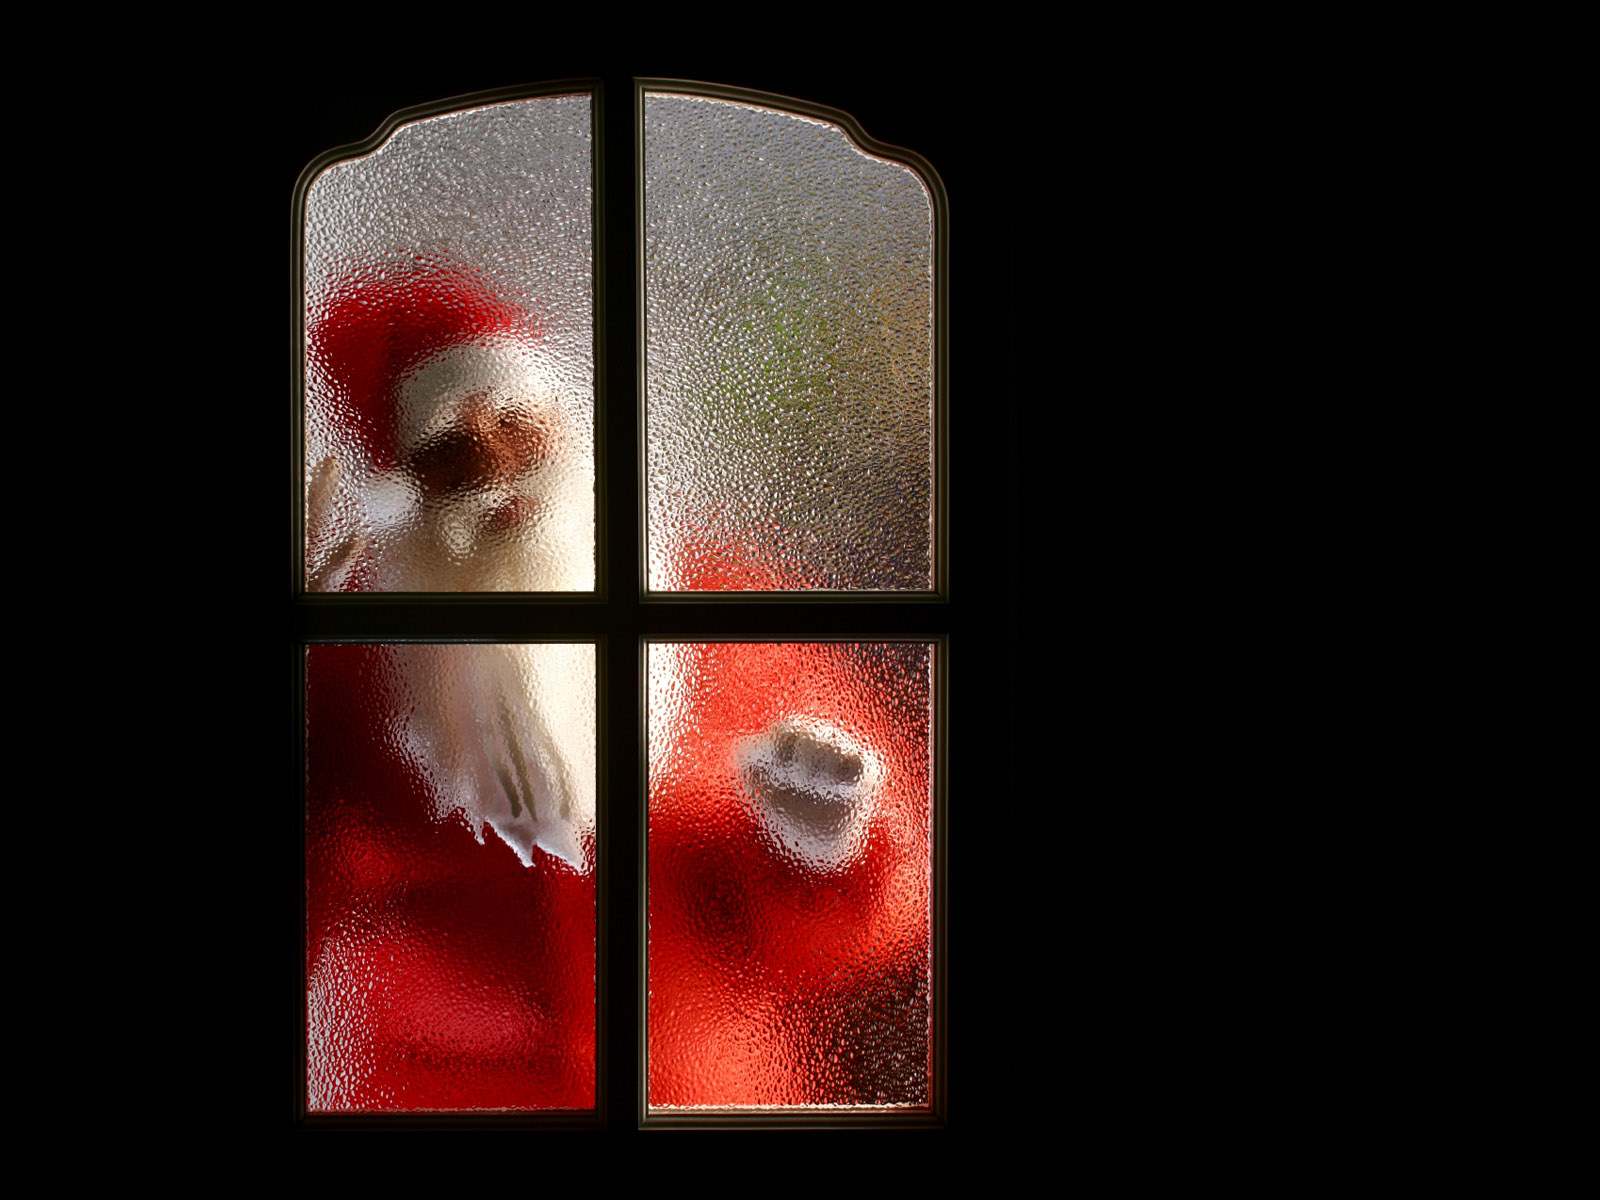 Really Cute Desktop Wallpaper 40 Cute Merry Christmas Wallpapers To Download For Free